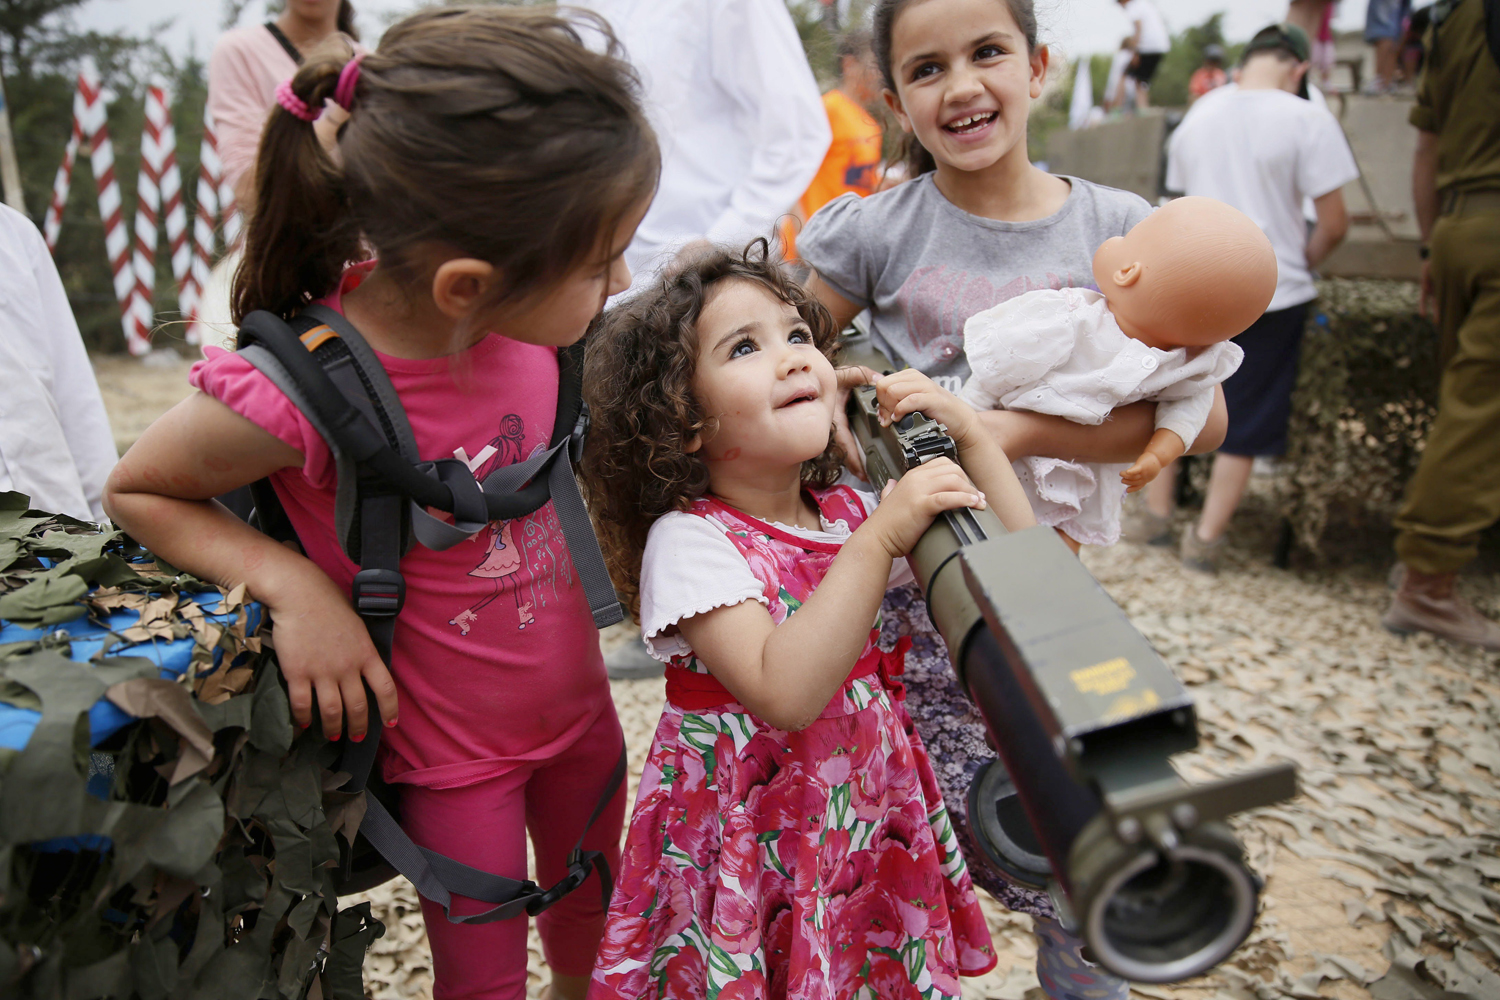 May 6, 2014. An Israeli child holds a rocket launcher as another holds her doll during a traditional military weapon display to mark the 66th anniversary of Israel's Independence at the West Bank settlement of Efrat.